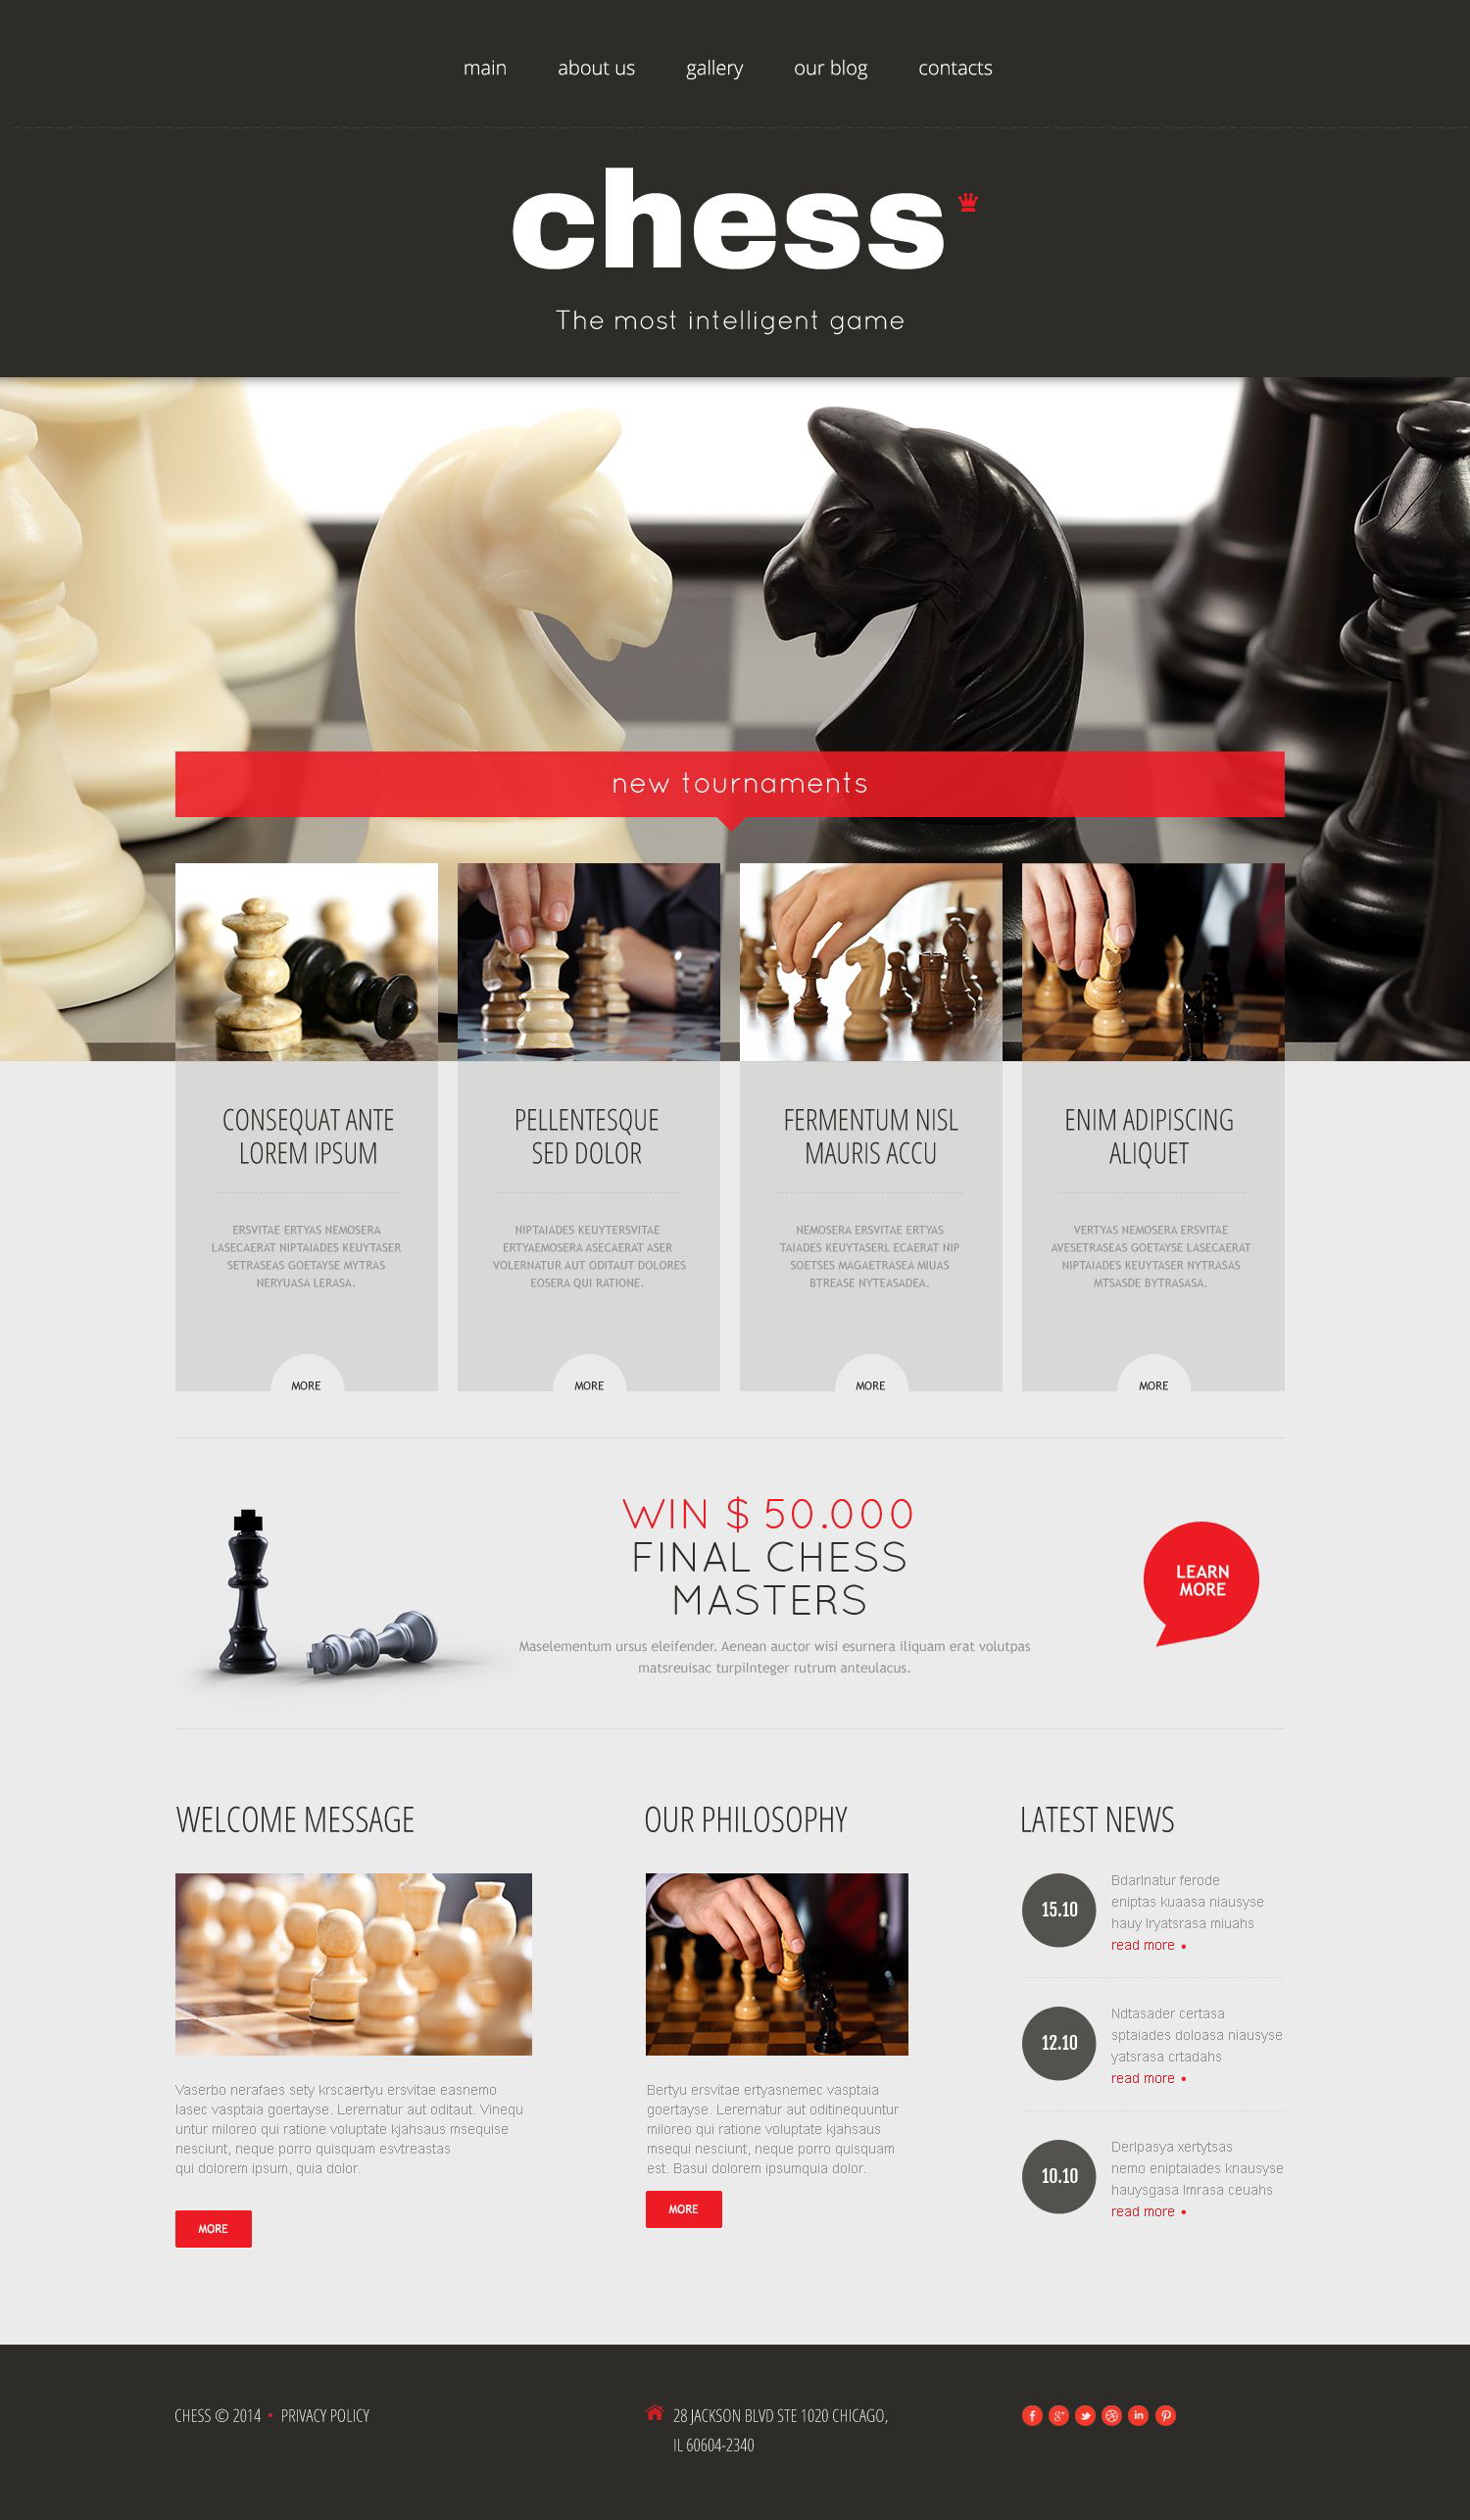 The Chess Club WordPress Design 53991, one of the best WordPress themes of its kind (sport, most popular), also known as chess club WordPress template, play WordPress template, player club WordPress template, tournament WordPress template, member WordPress template, win WordPress template, lose WordPress template, championship WordPress template, rating WordPress template, result WordPress template, sport WordPress template, move WordPress template, figure WordPress template, check WordPress template, mate and related with chess club, play, player club, tournament, member, win, lose, championship, rating, result, sport, move, figure, check, mate, etc.